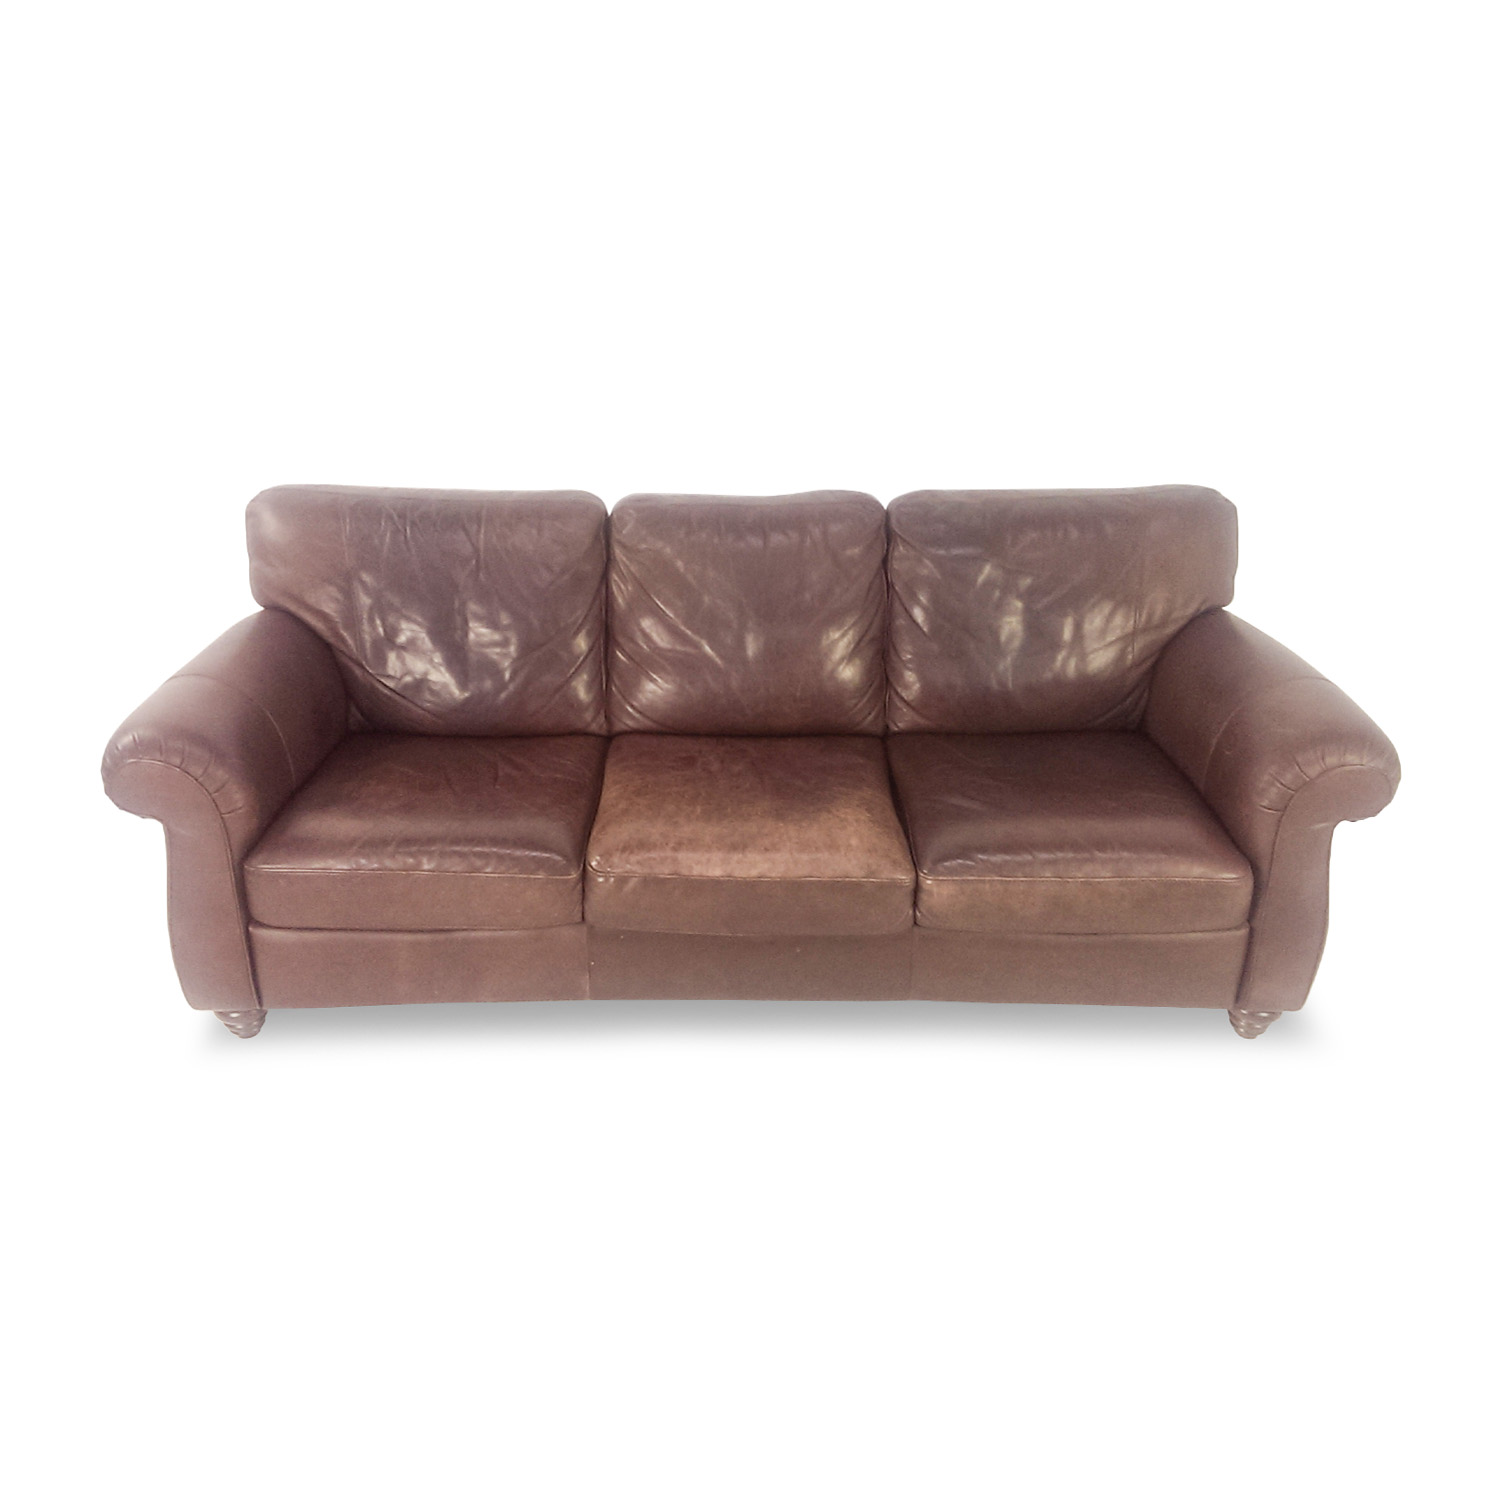 second hand brown leather sofa www gradschoolfairs com Cream Leather Sofa Pink Leather Sofa